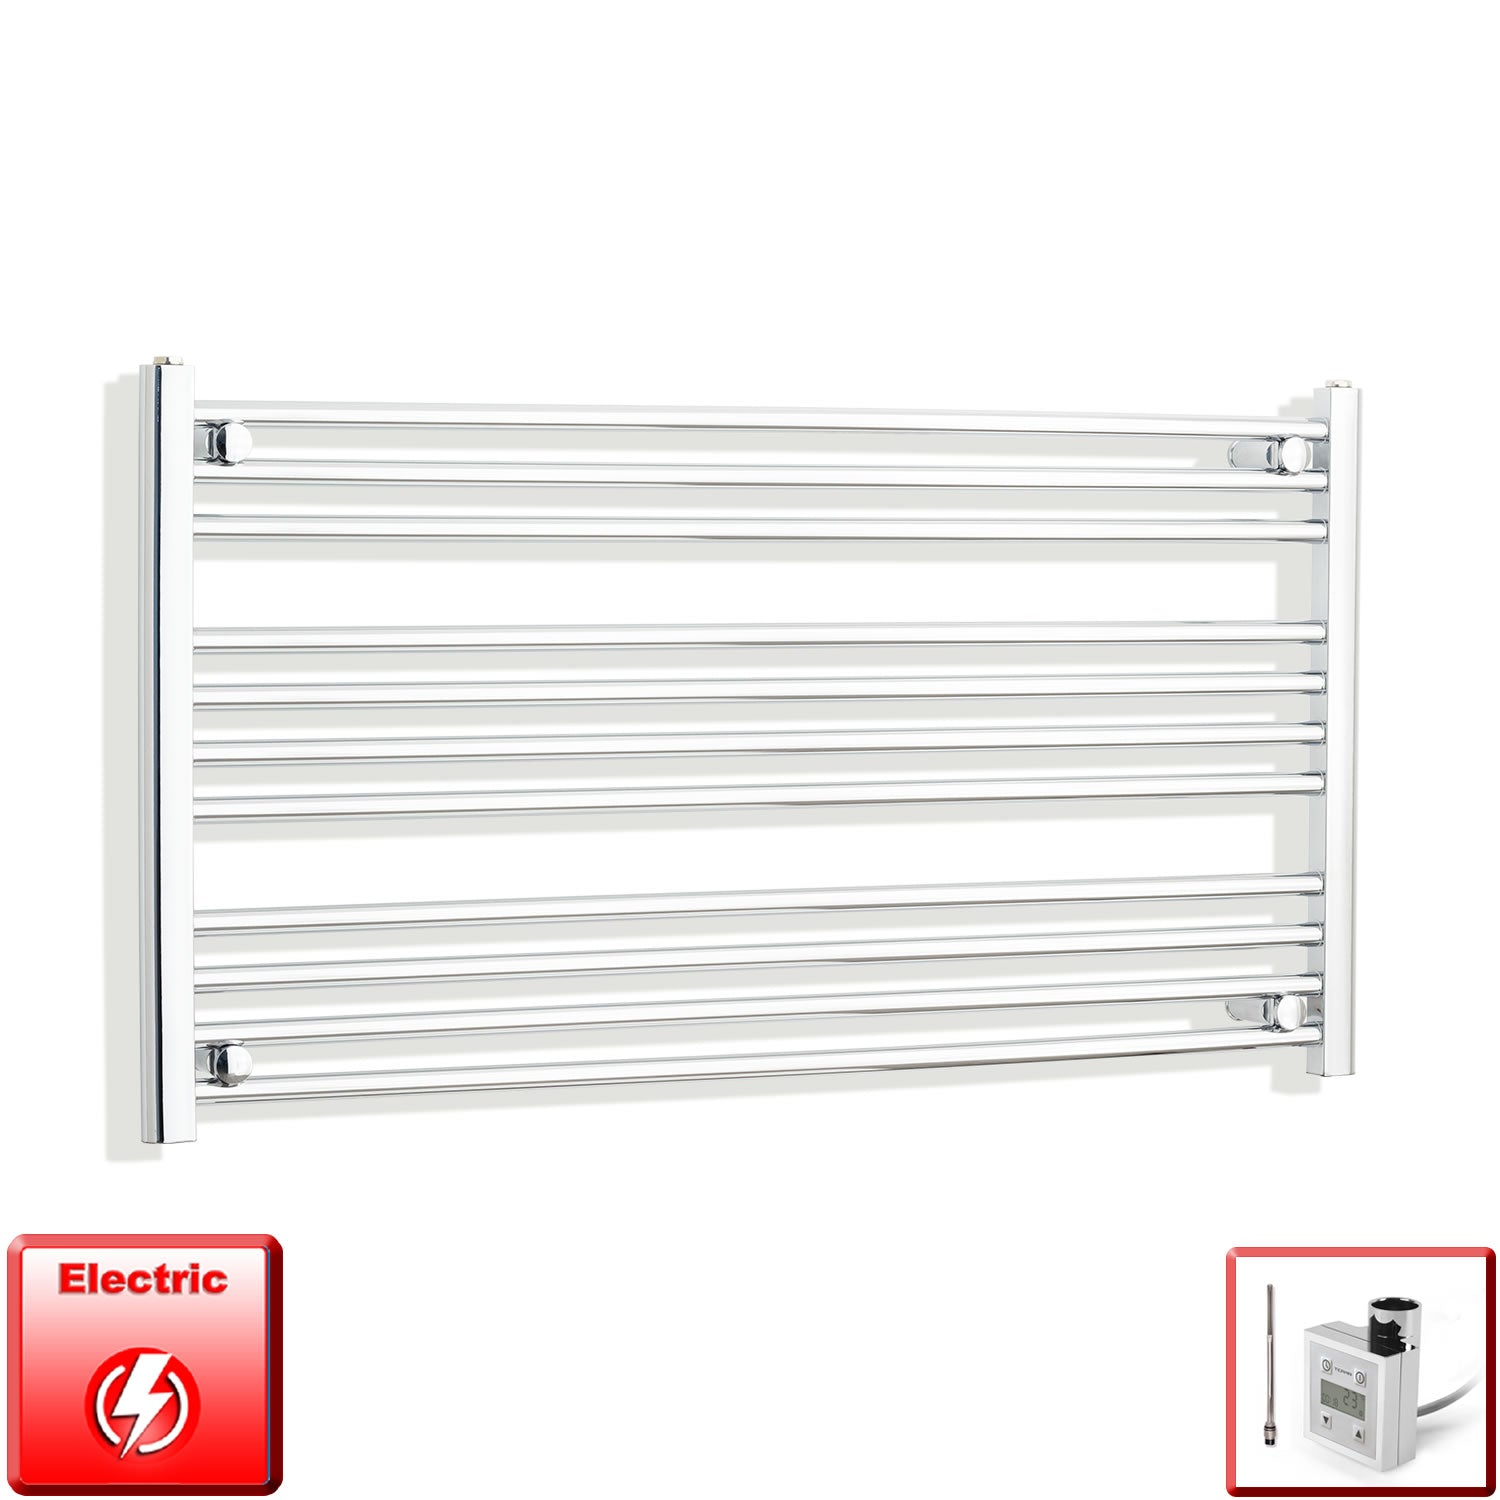 1300mm Wide 600mm High Pre-Filled Chrome Electric Towel Rail Radiator With Thermostatic KTX3 Element